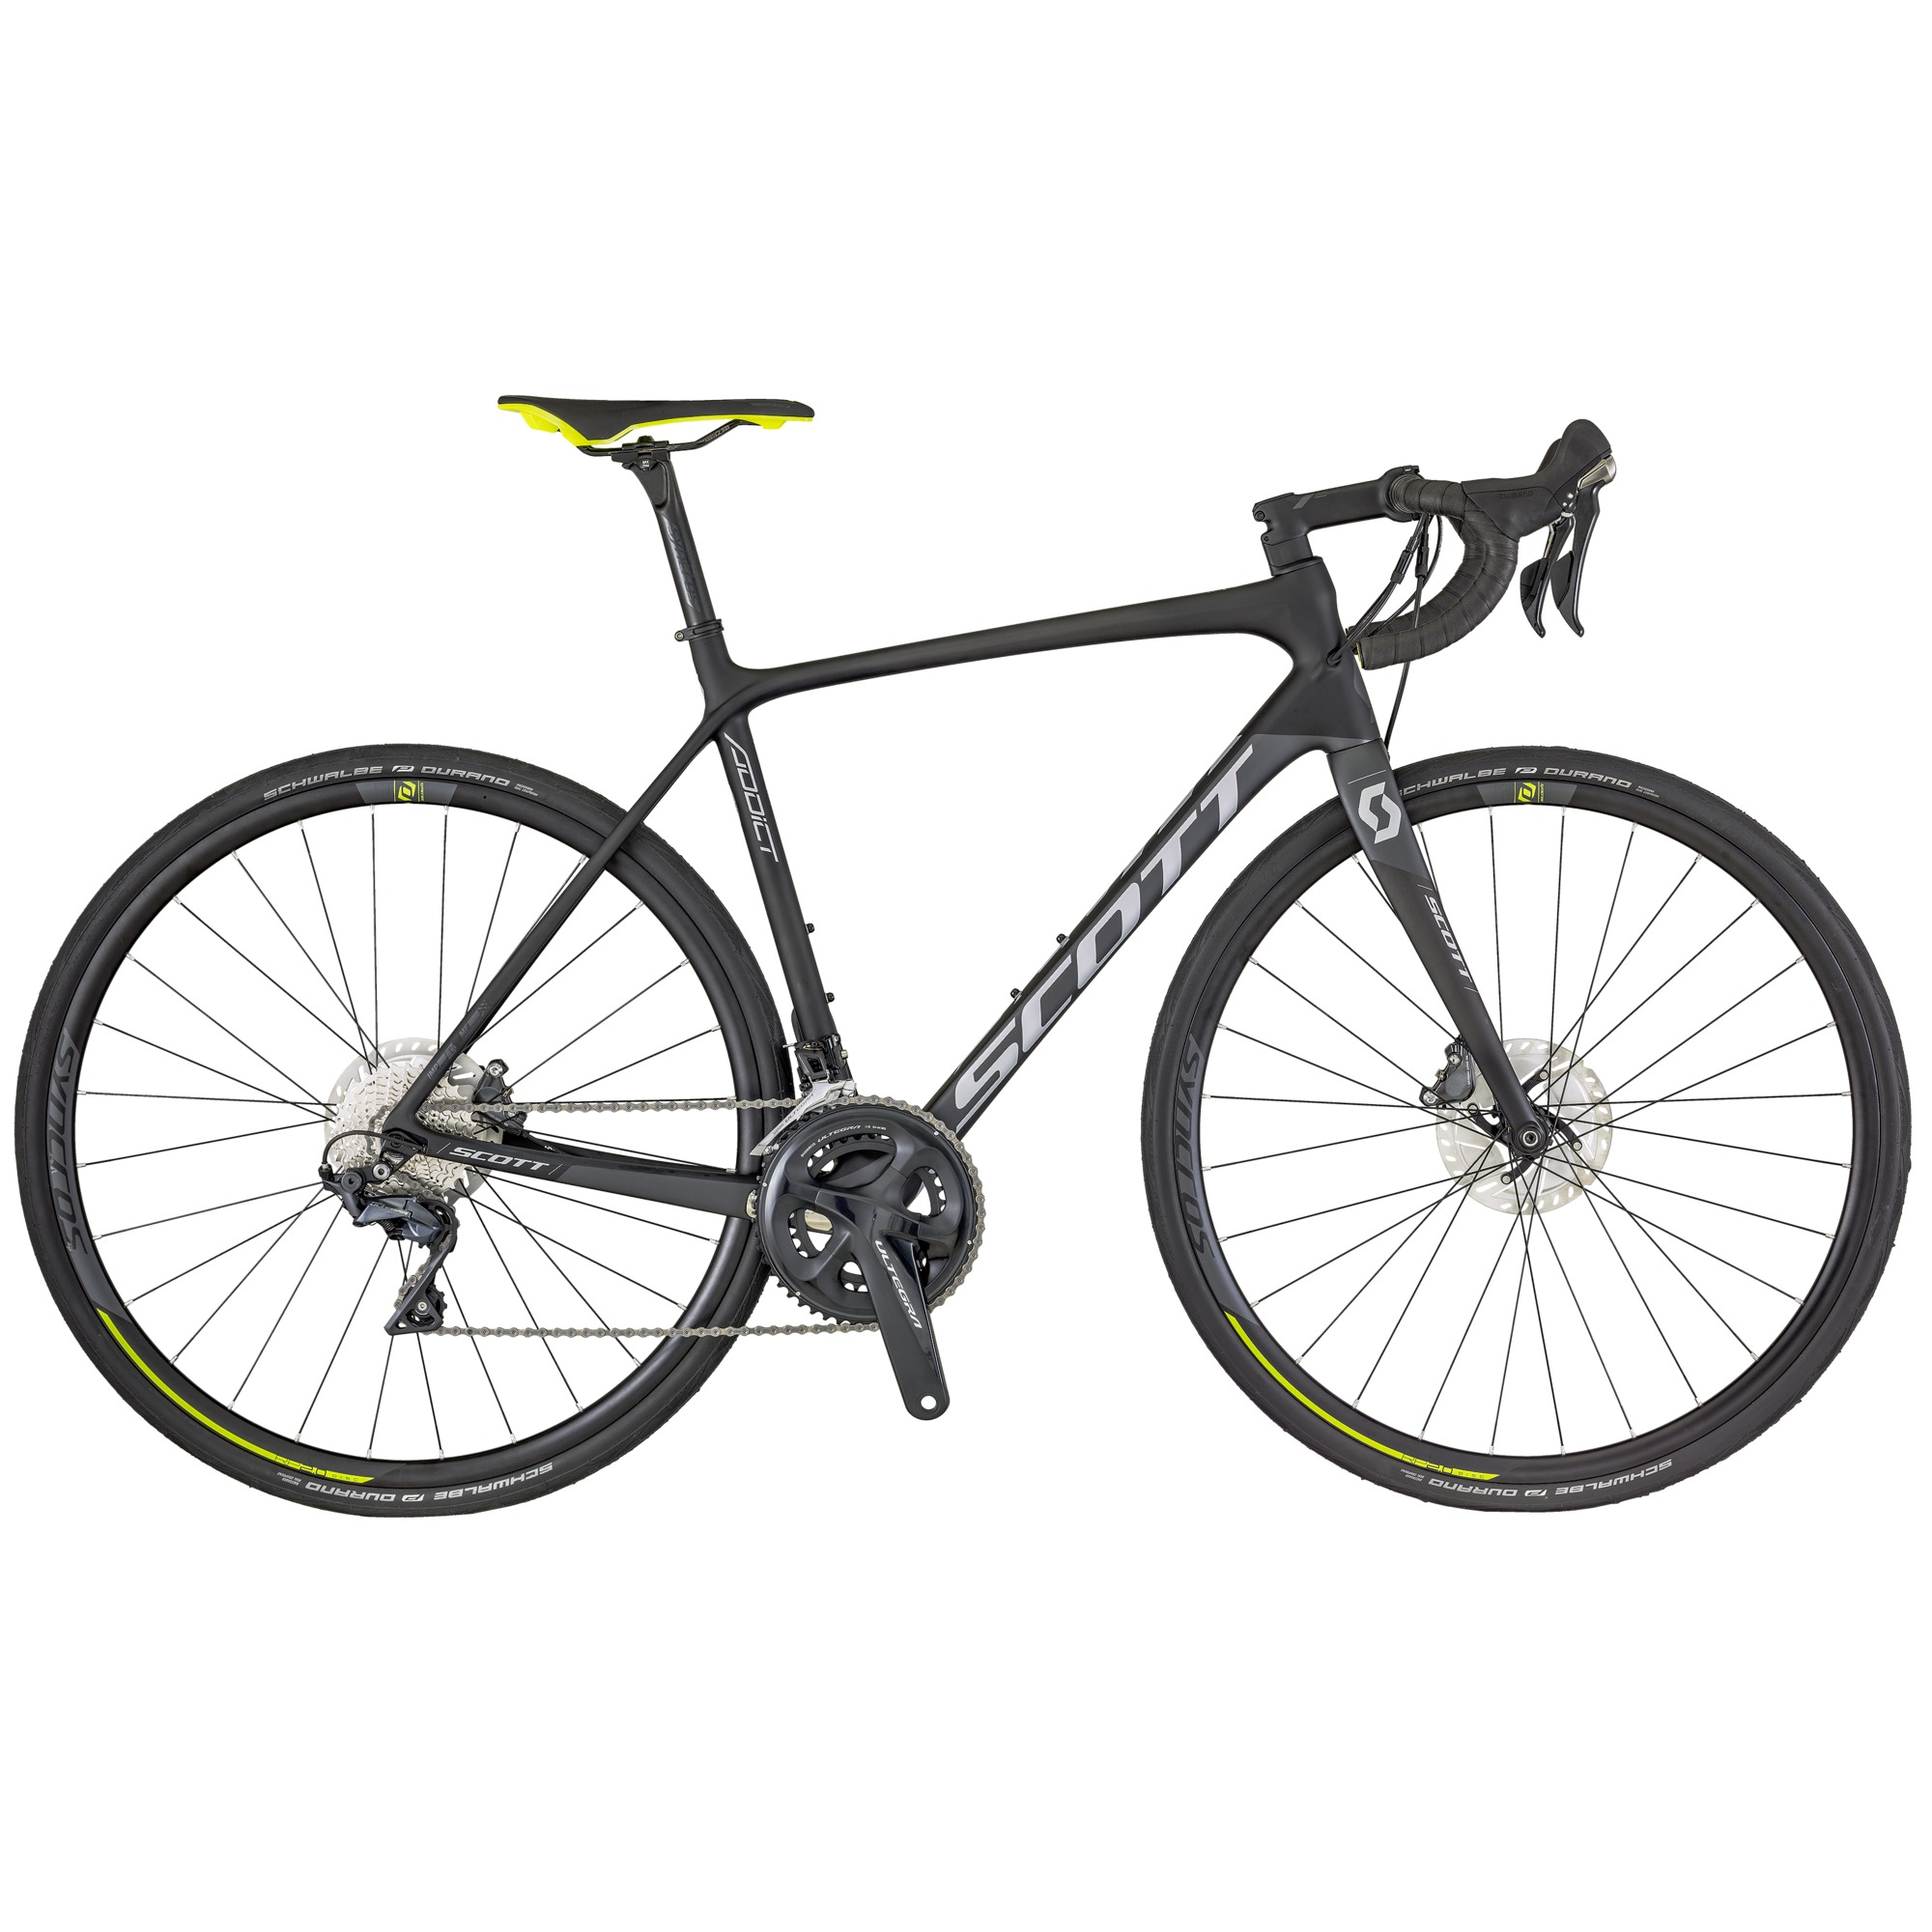 SCOTT Addict 10 Disc Bike L56 - Zweirad Homann